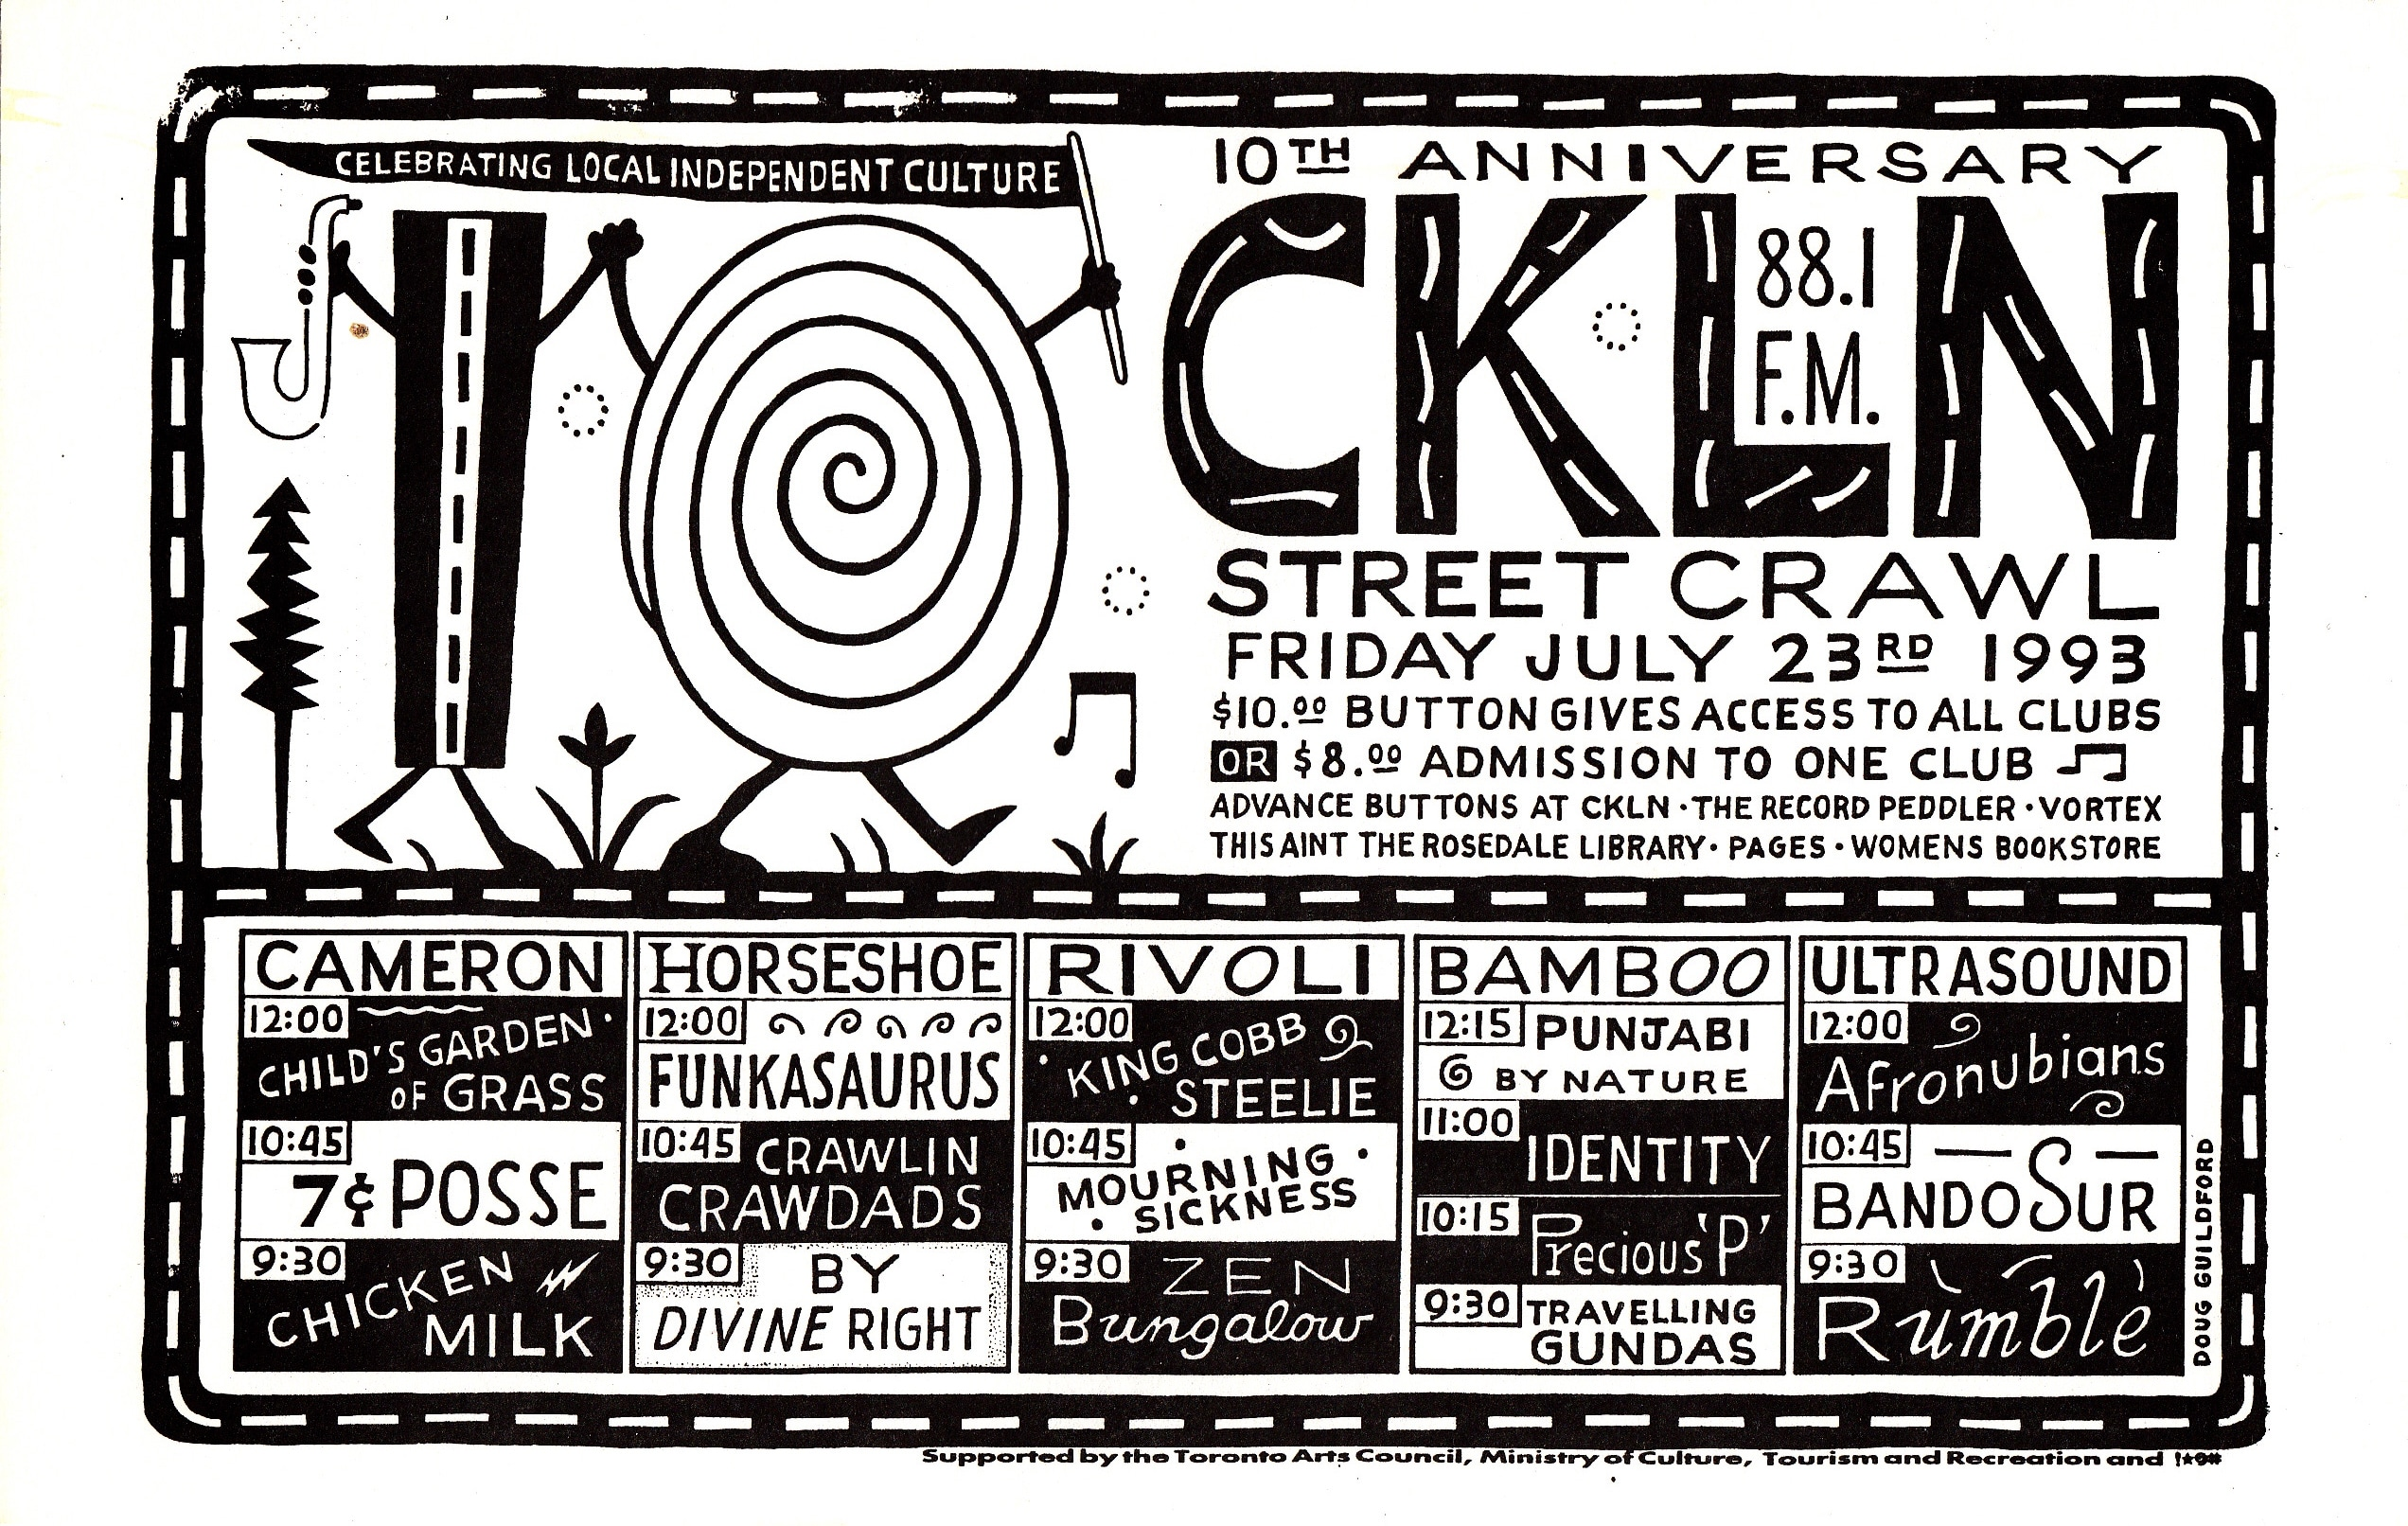 A black and white image of an events calendar featuring upcoming musical acts and when they were scheduled to play.